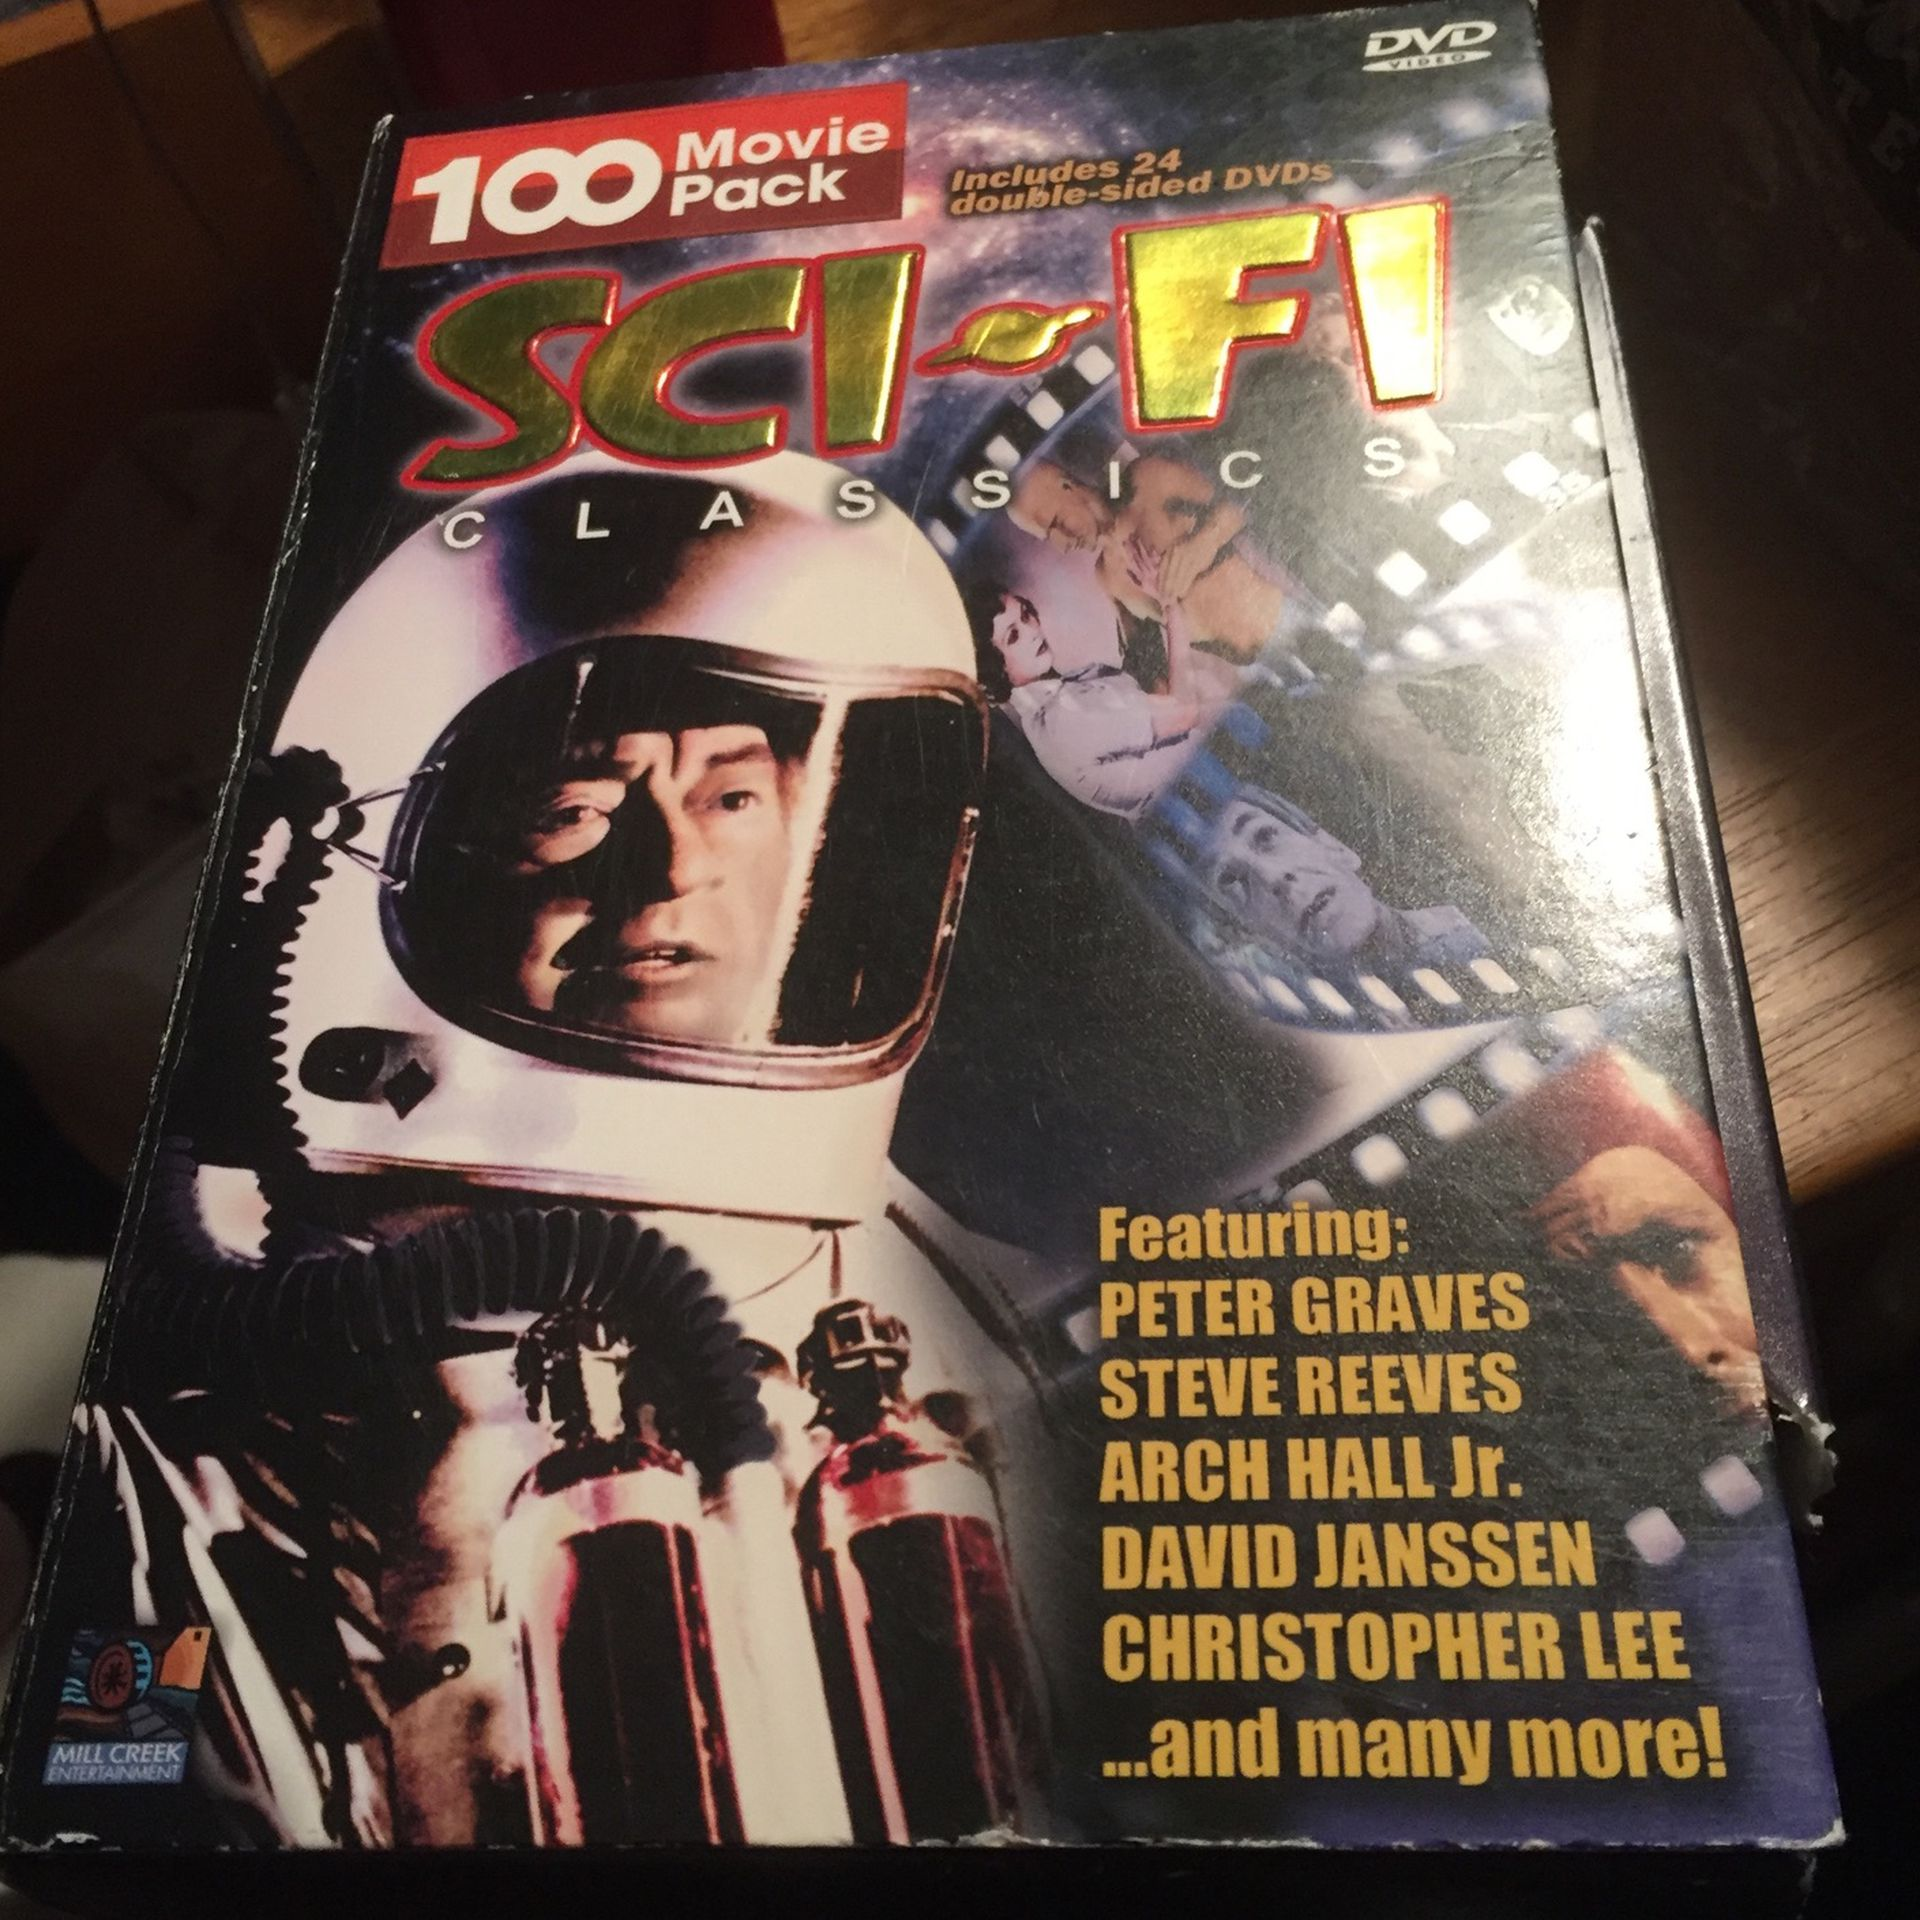 100 Movie Sci-fi Collection